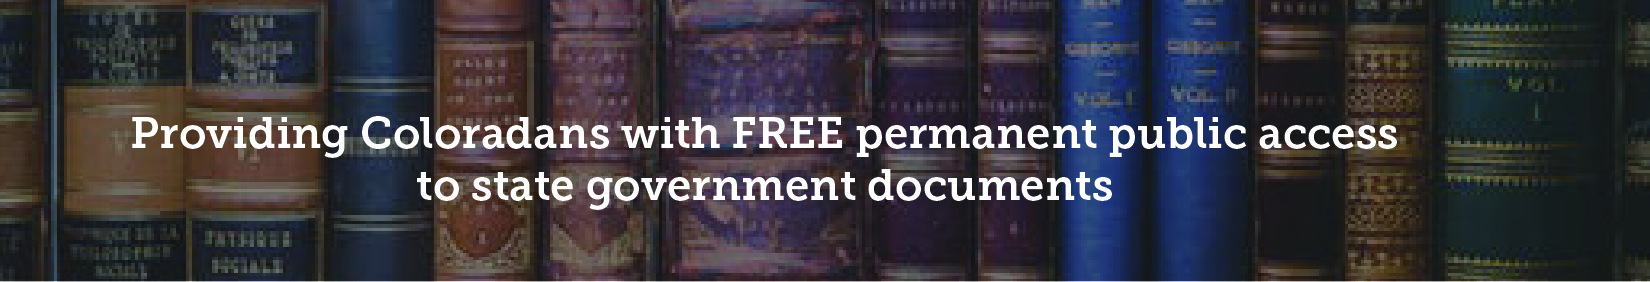 Providing Coloradans with FREE permanent public access to state government documents